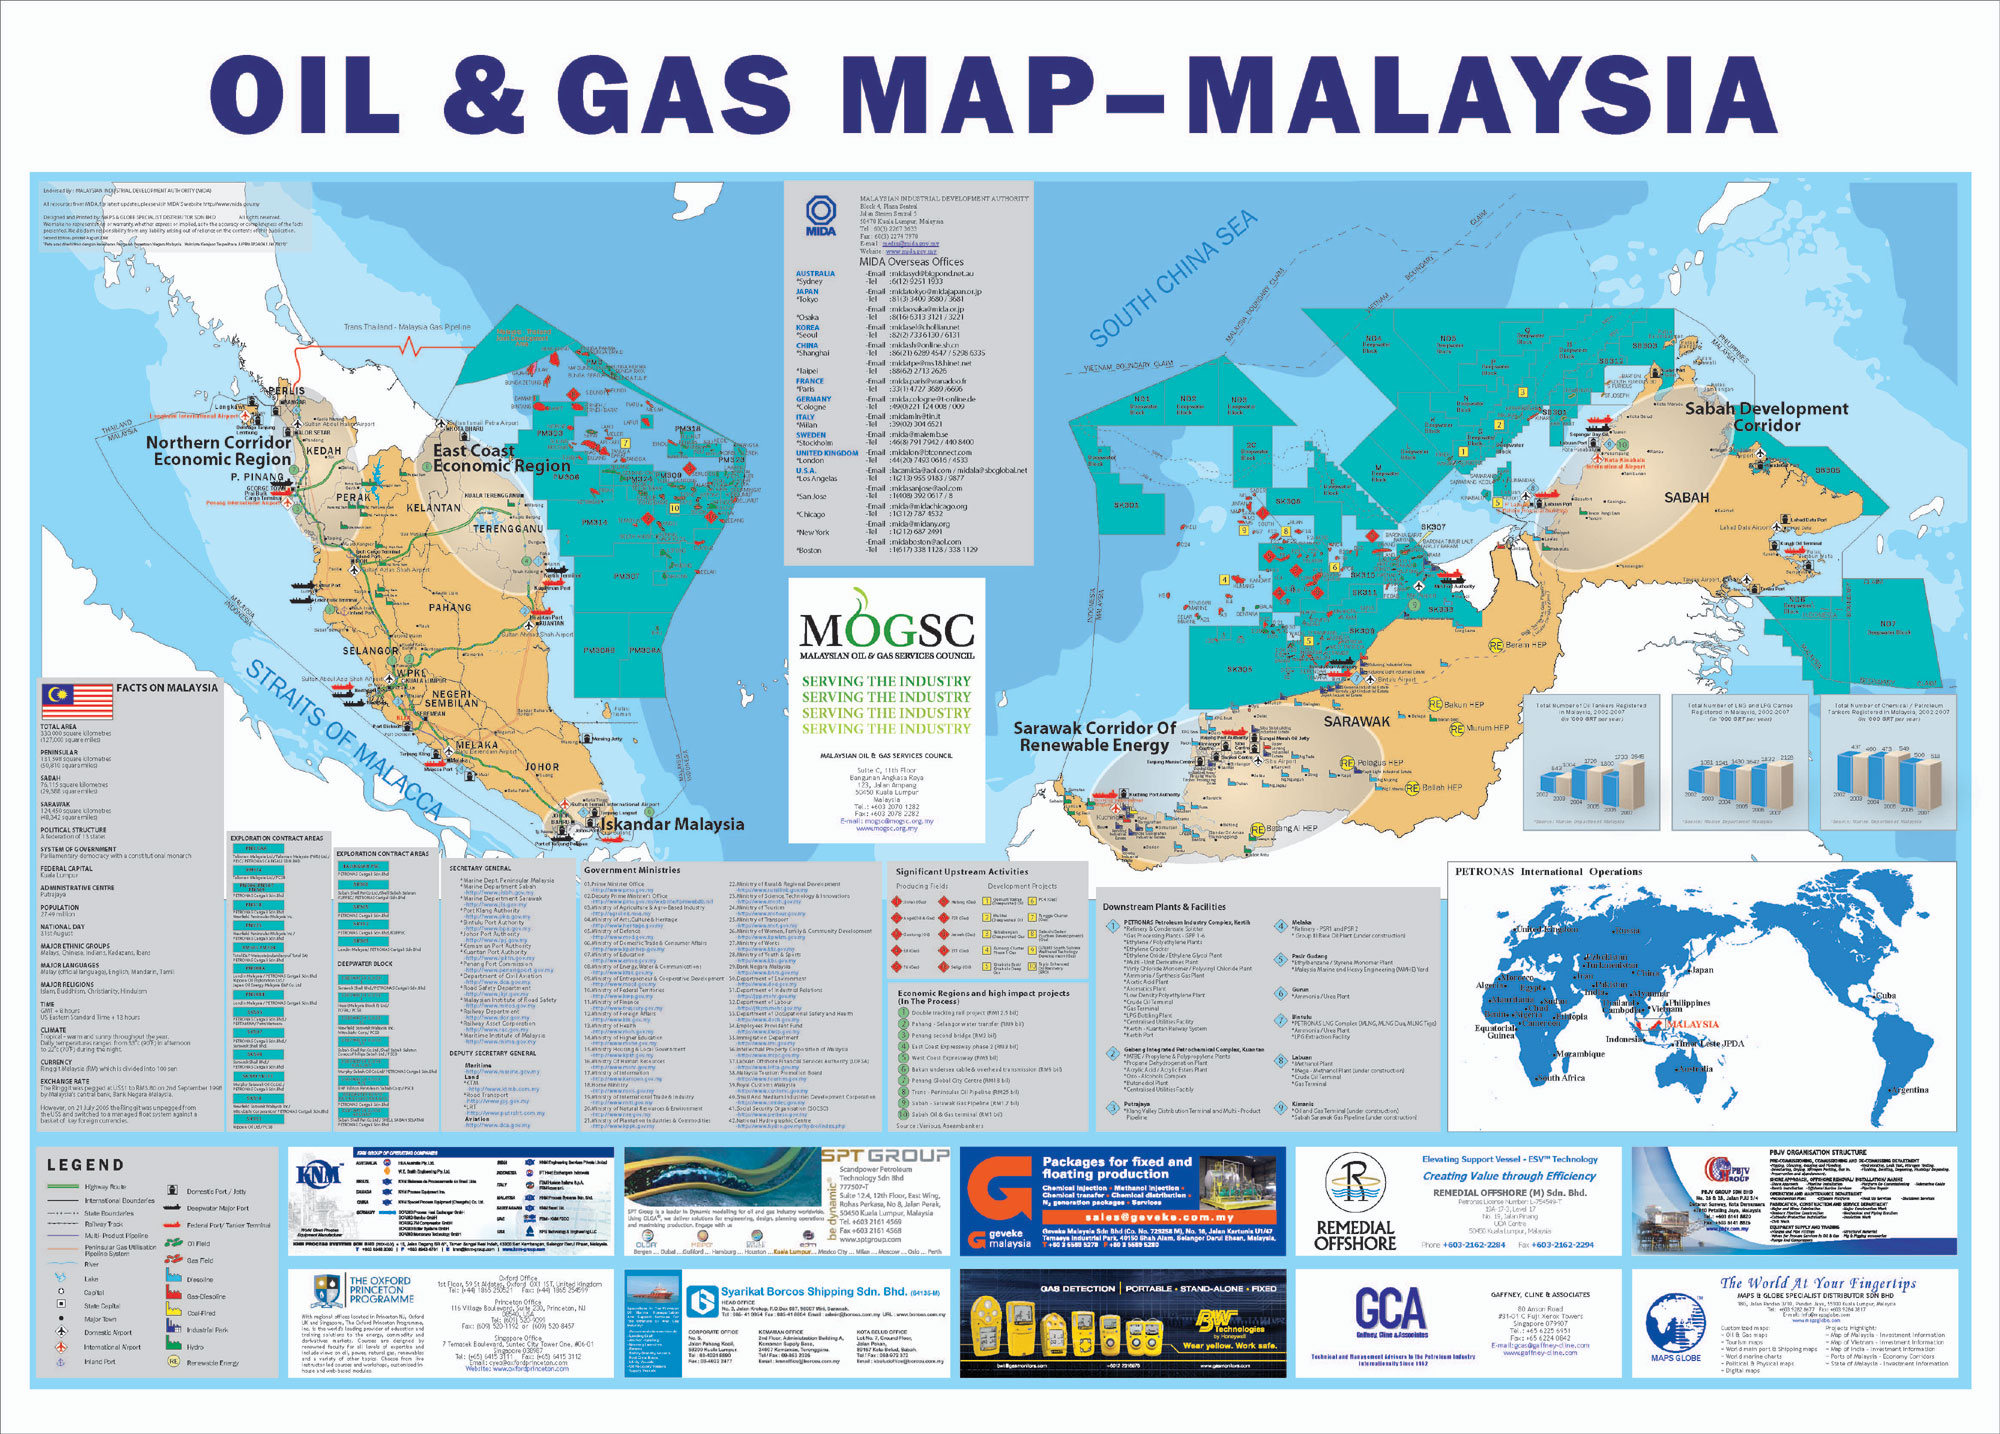 exxonmobil in malaysia a country risk Effective emergency preparedness depends on competent response teams  learn more at exxonmobilcom energy lives here.